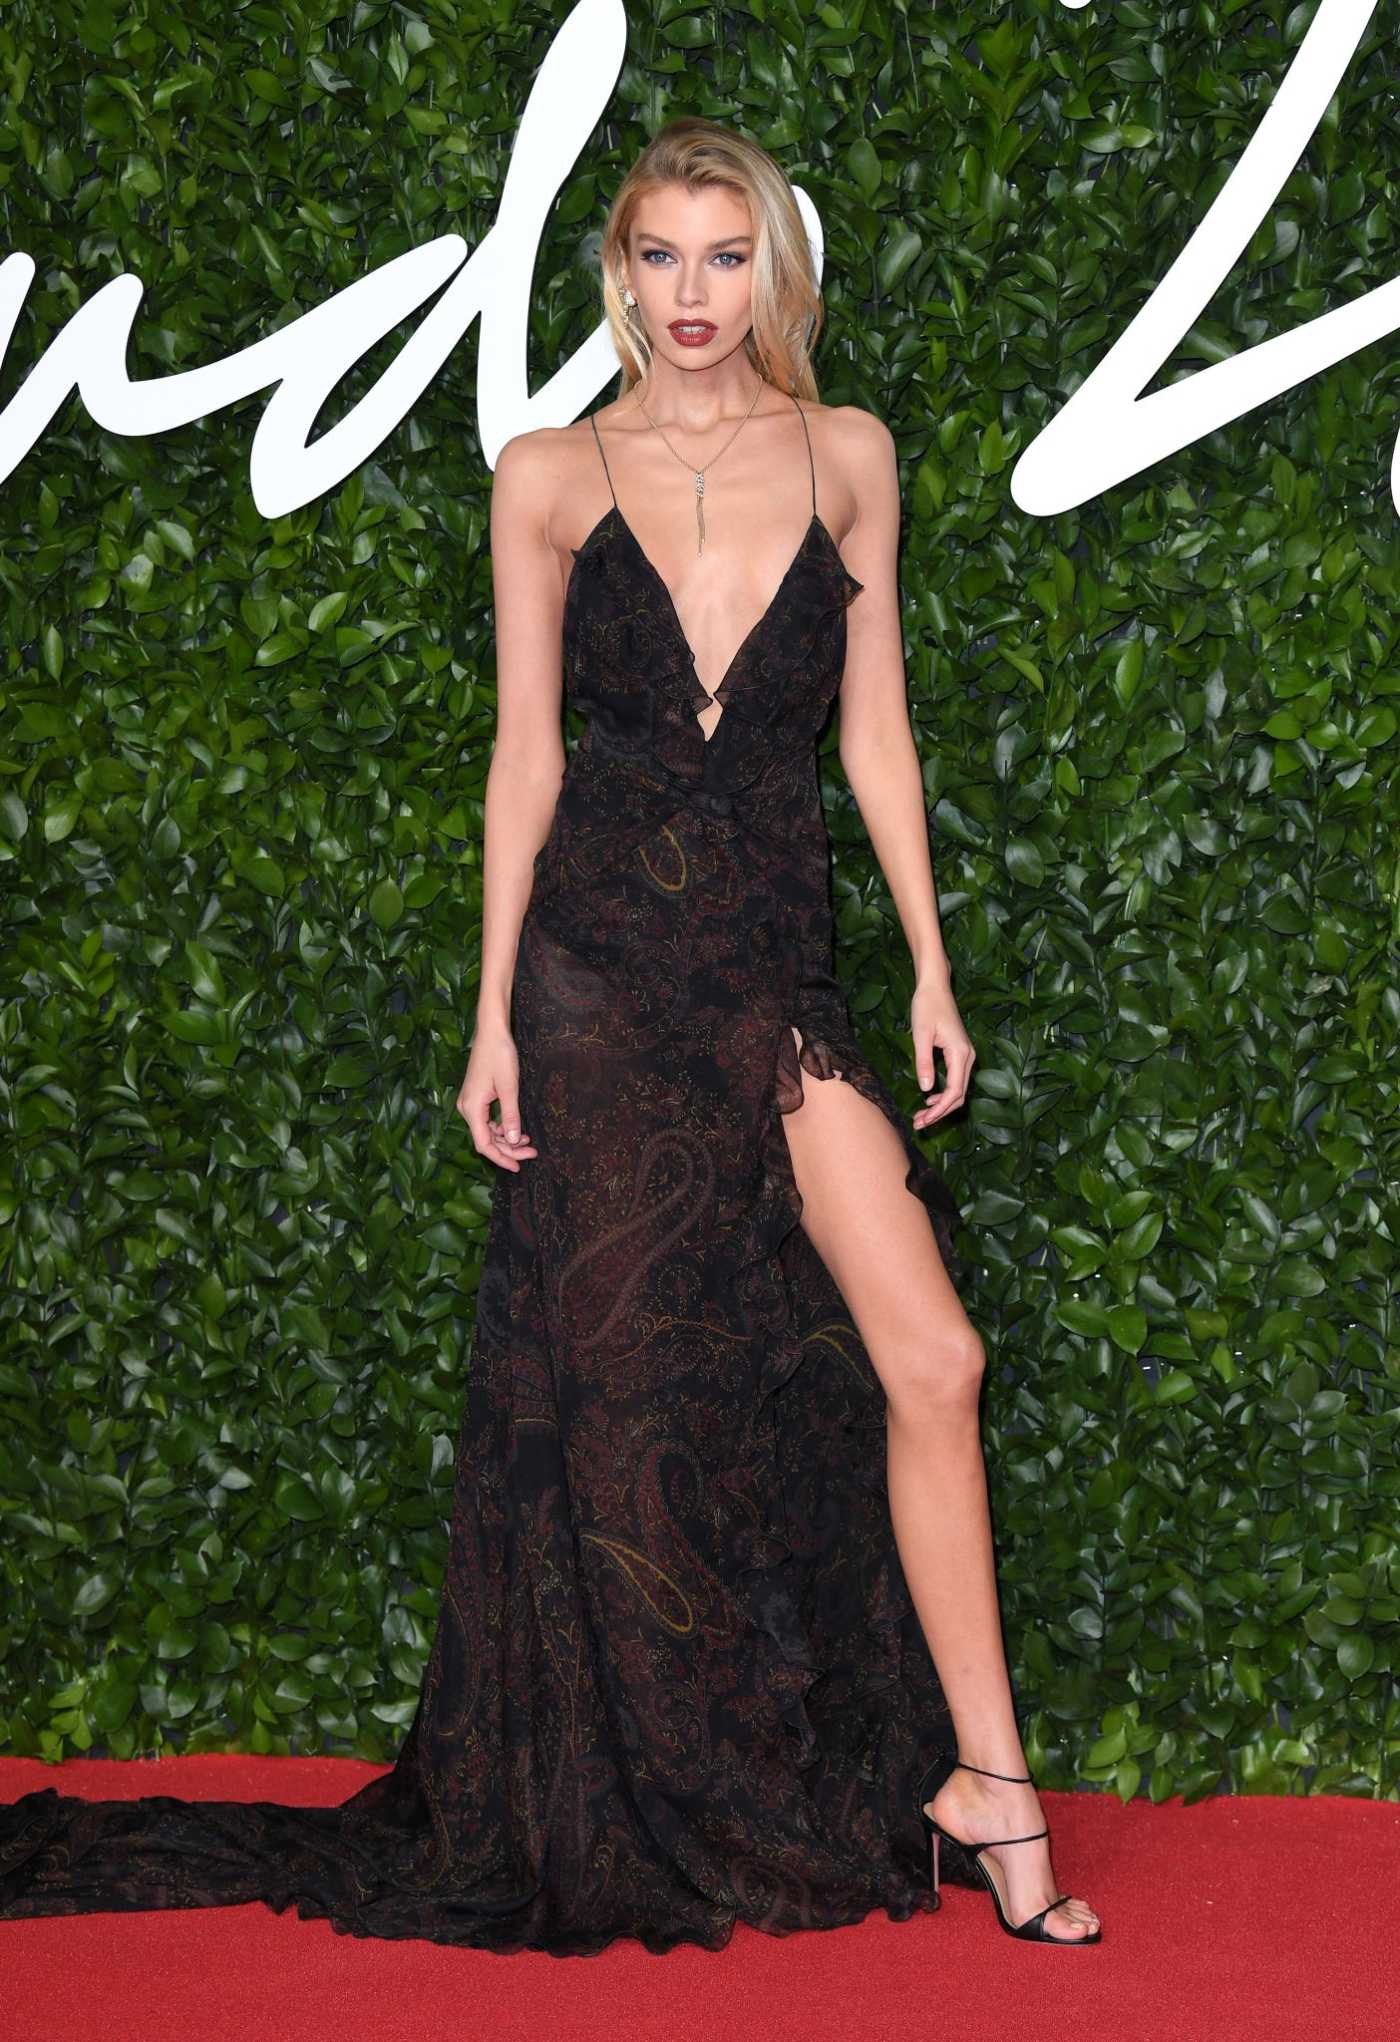 Stella Maxwell Attends 2019 Fashion Awards at Royal Albert Hall in London 12/02/2019